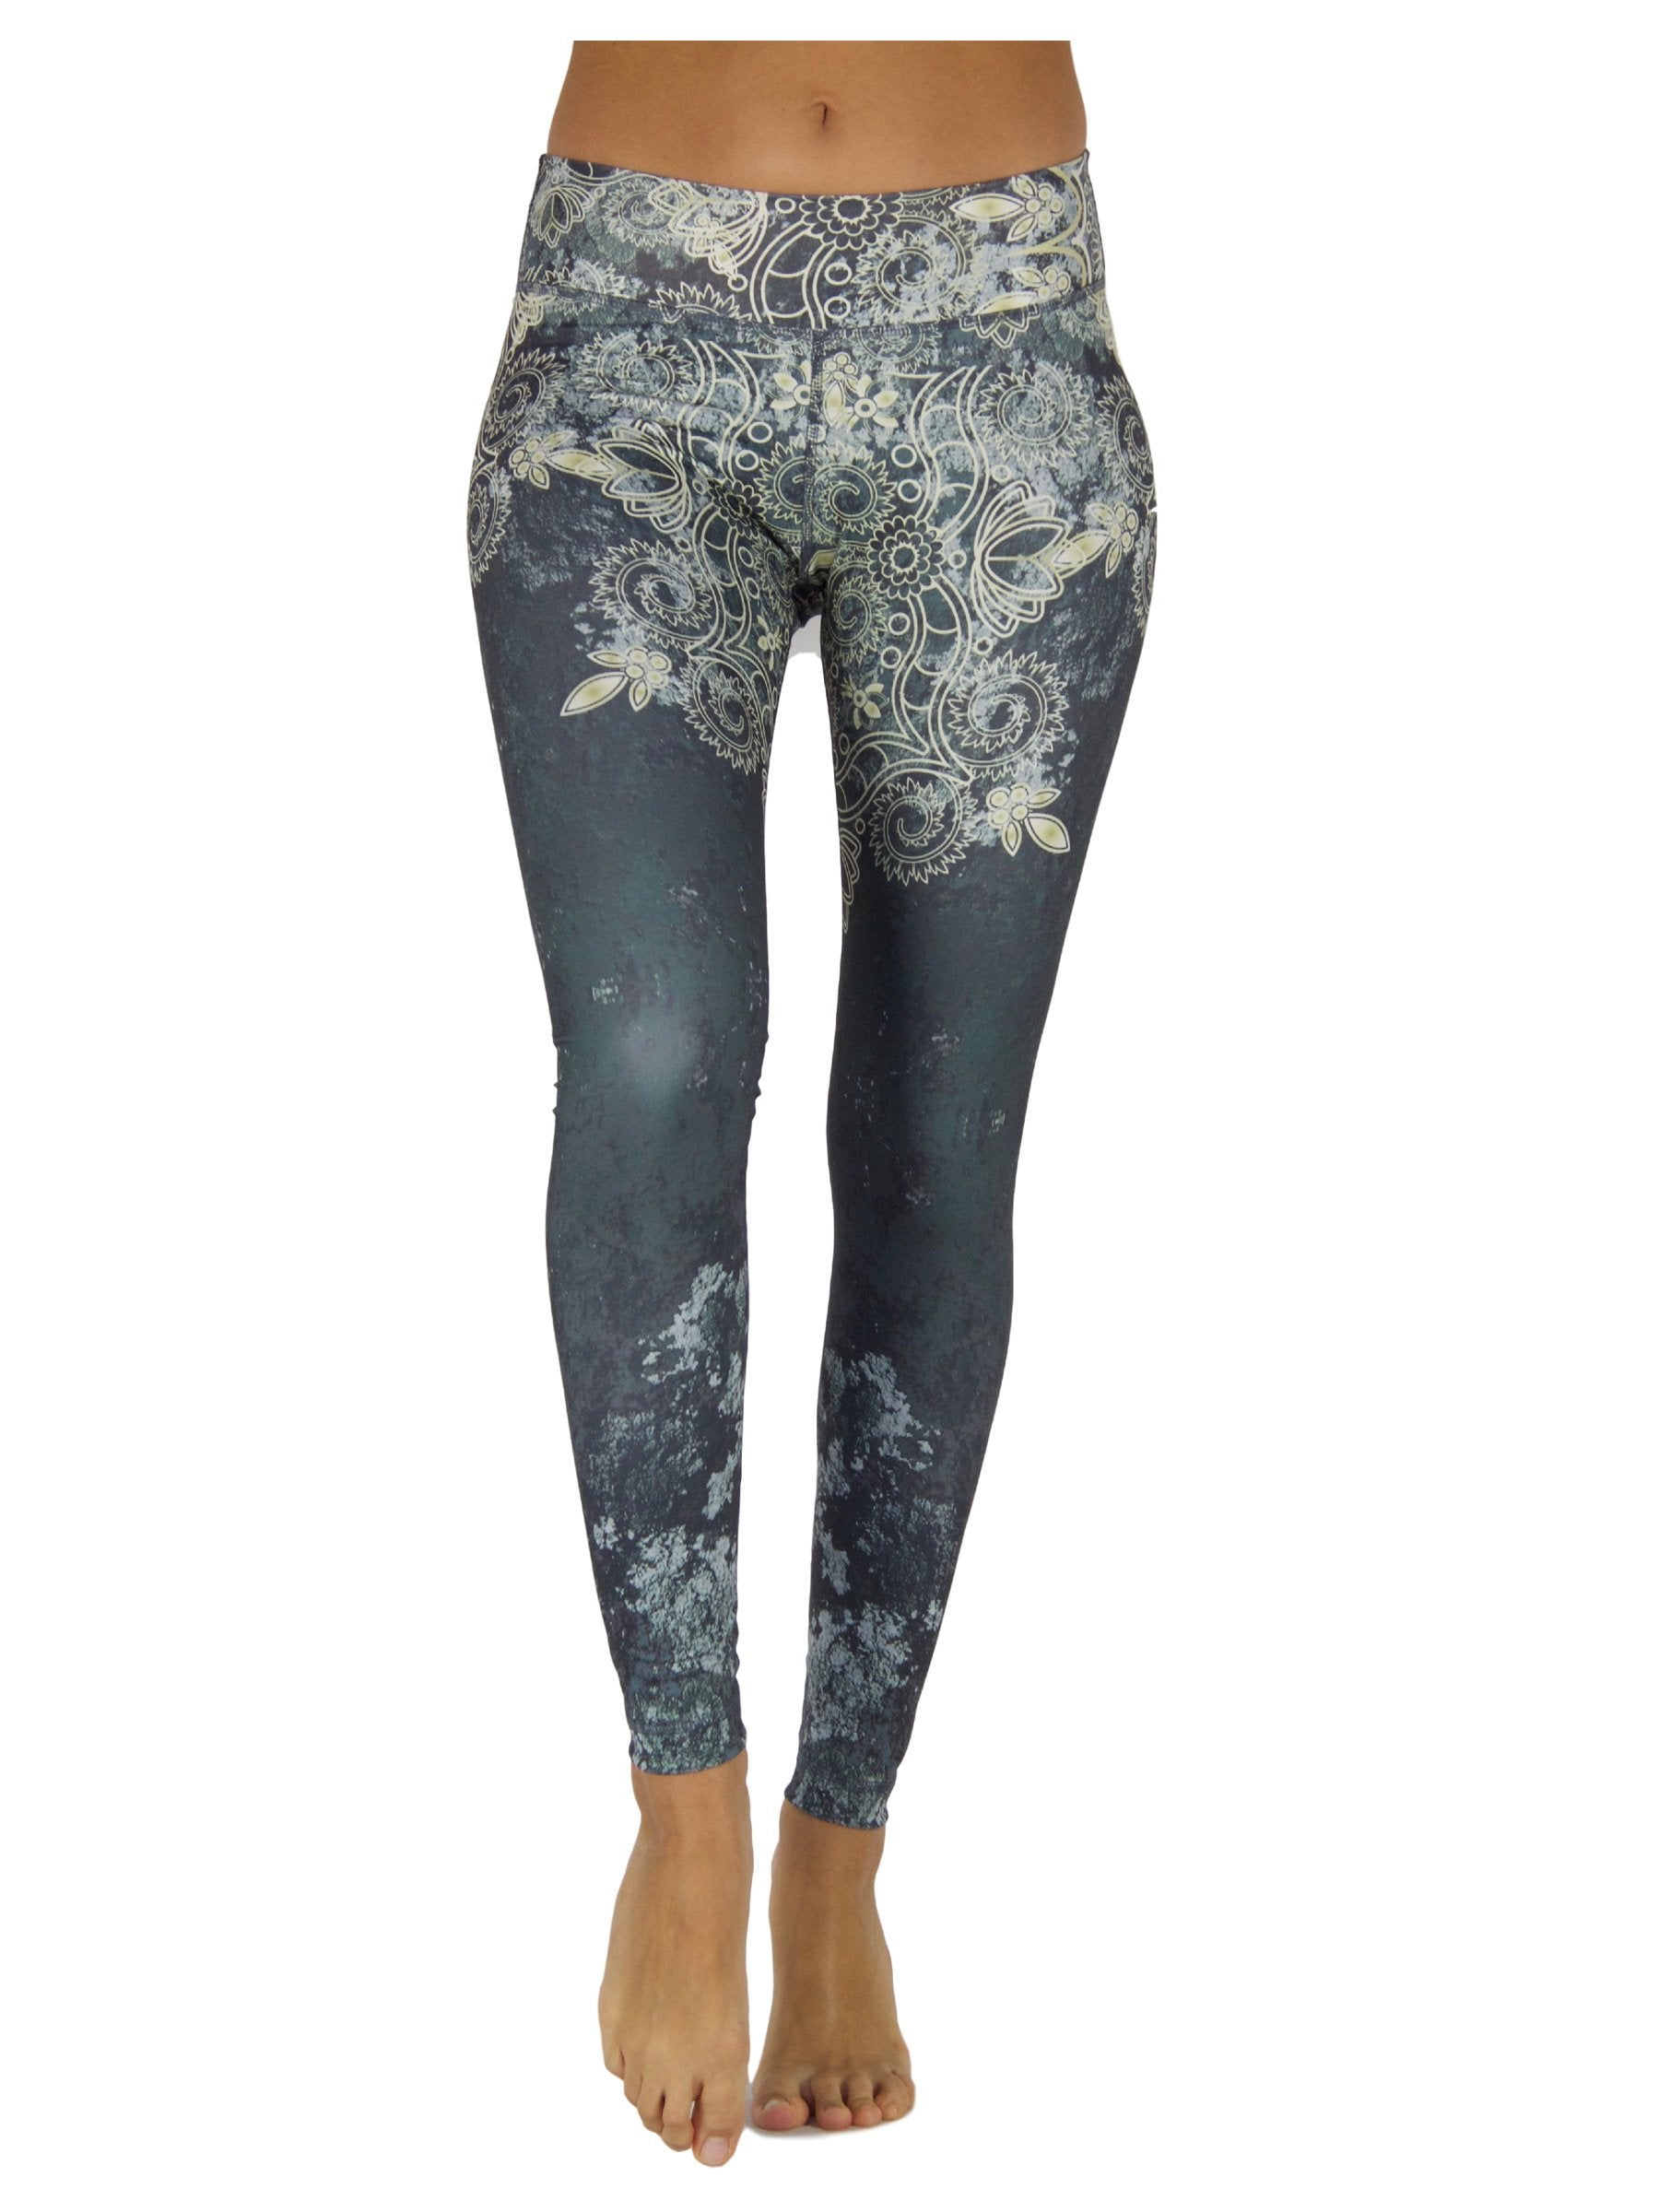 Ace of Lace by Niyama - High Quality, Yoga Legging for Movement Artists.